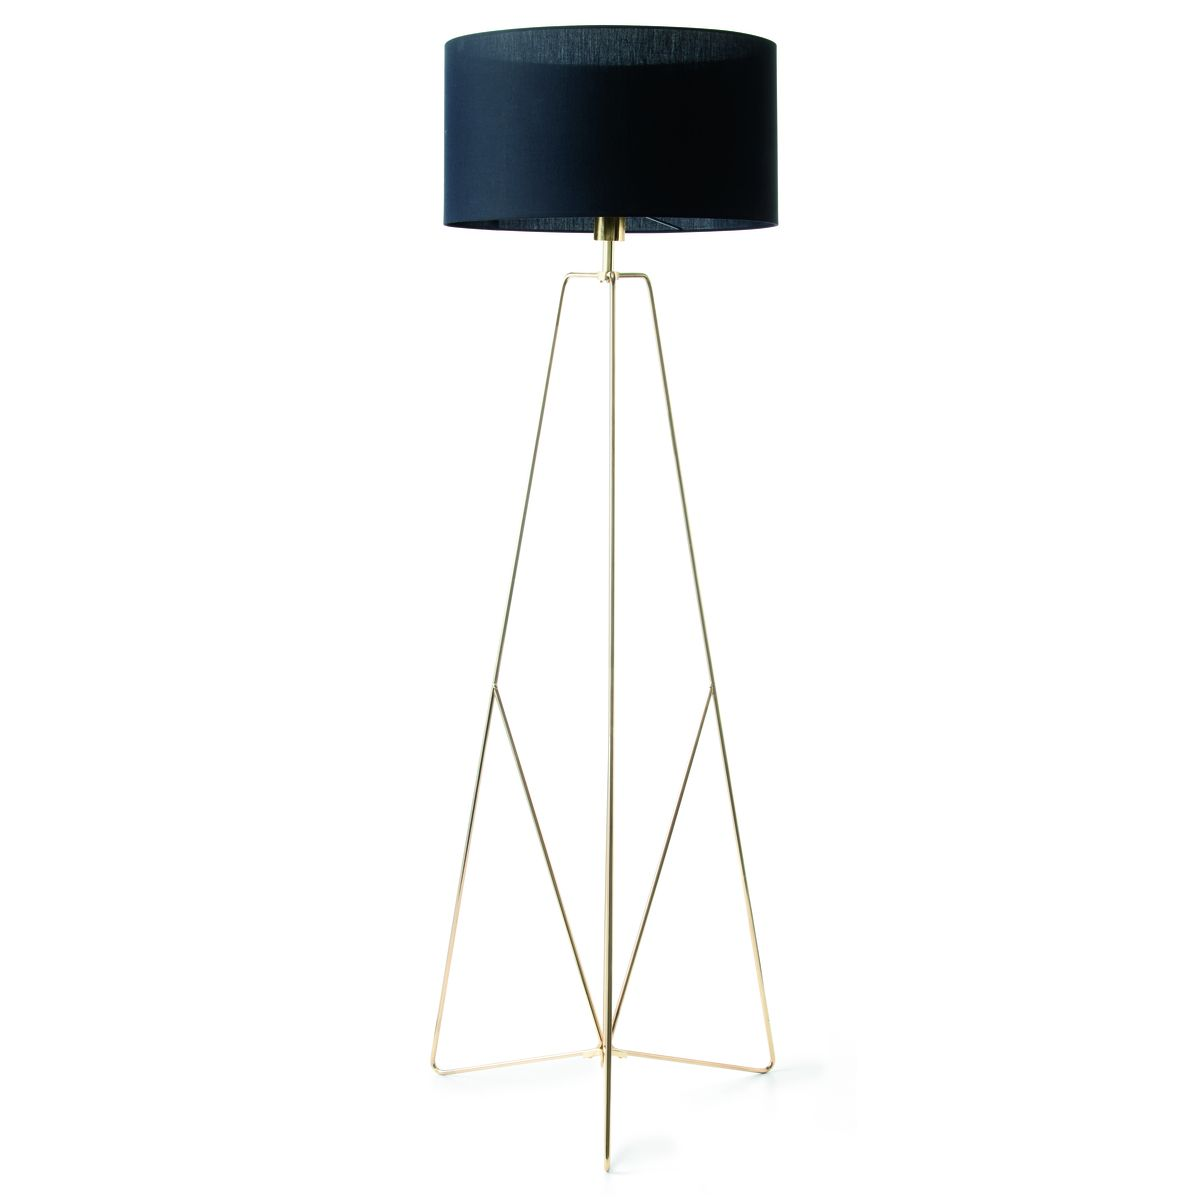 Brass Look Floor Lamp | Kmart | Lamp